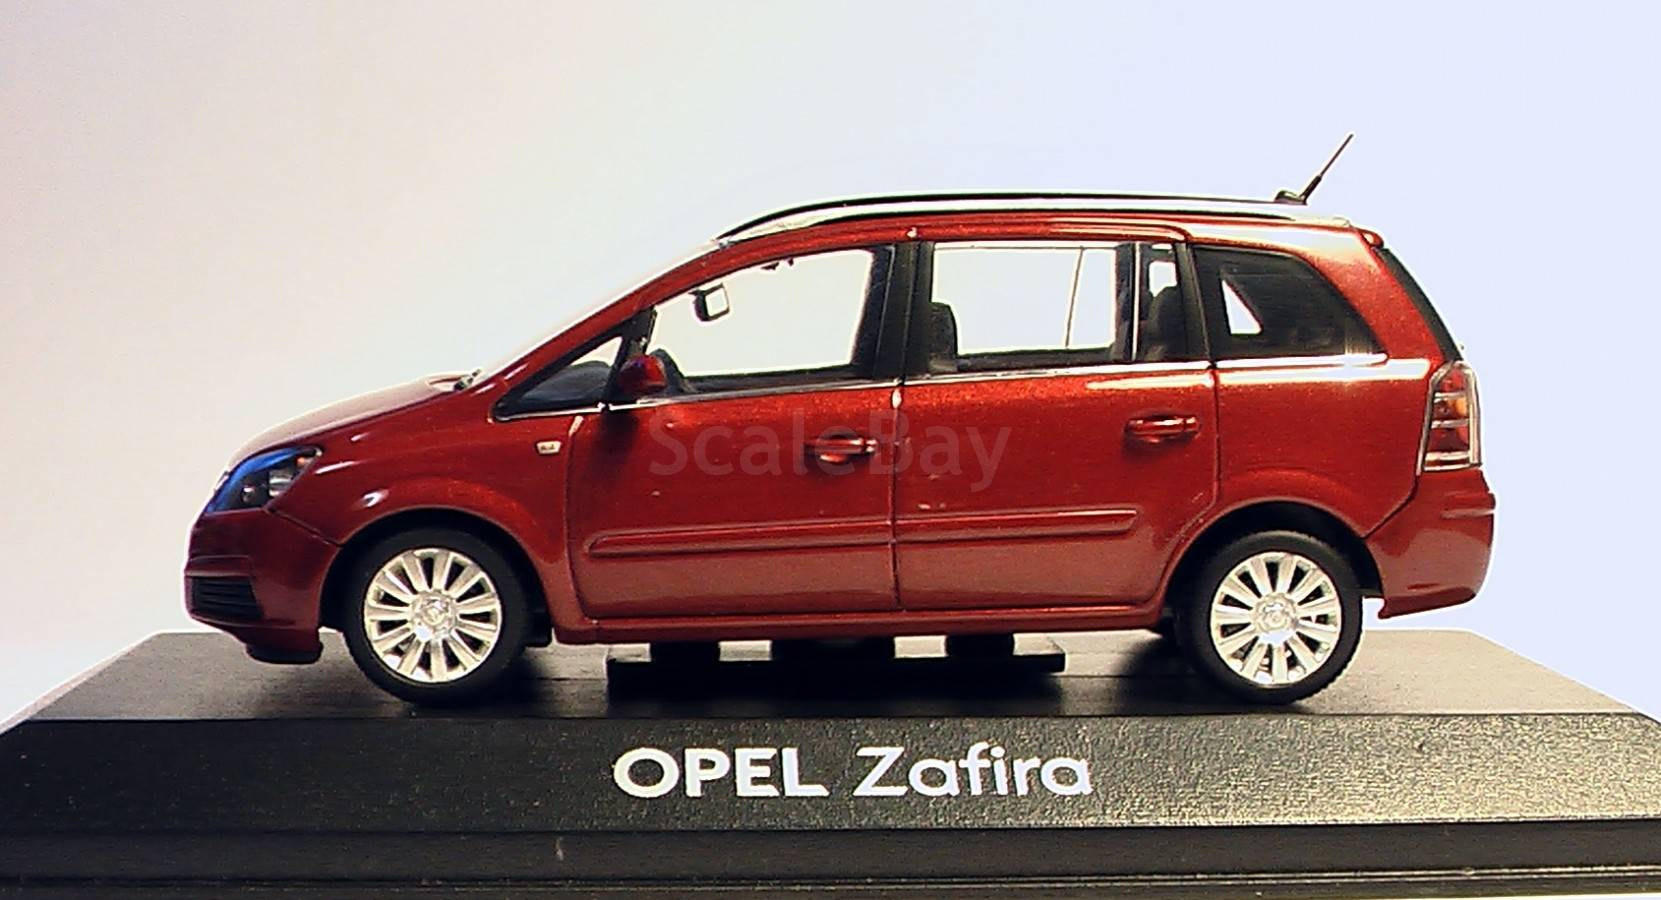 opel zafira 2 2006 minichamps. Black Bedroom Furniture Sets. Home Design Ideas